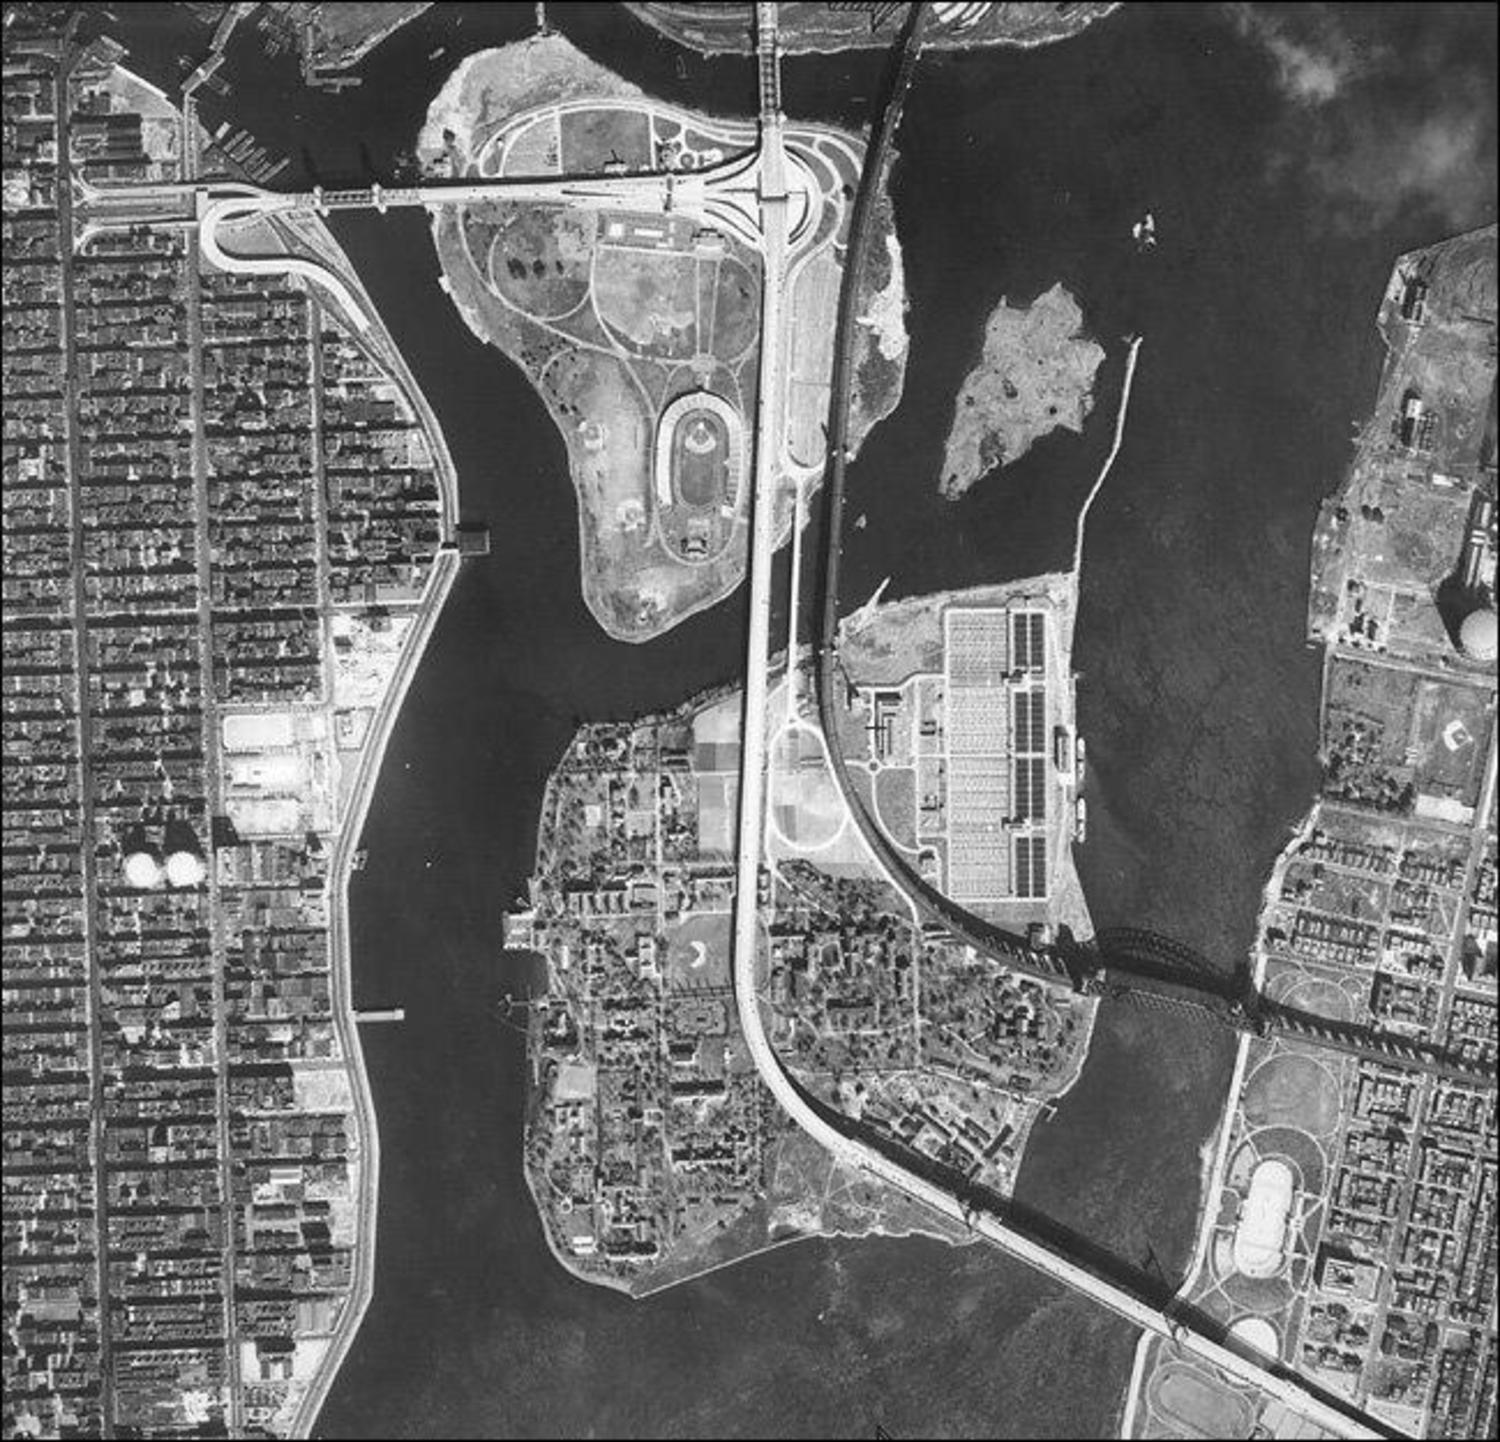 Randalls, Wards, and Sunken Meadow Island in 1948